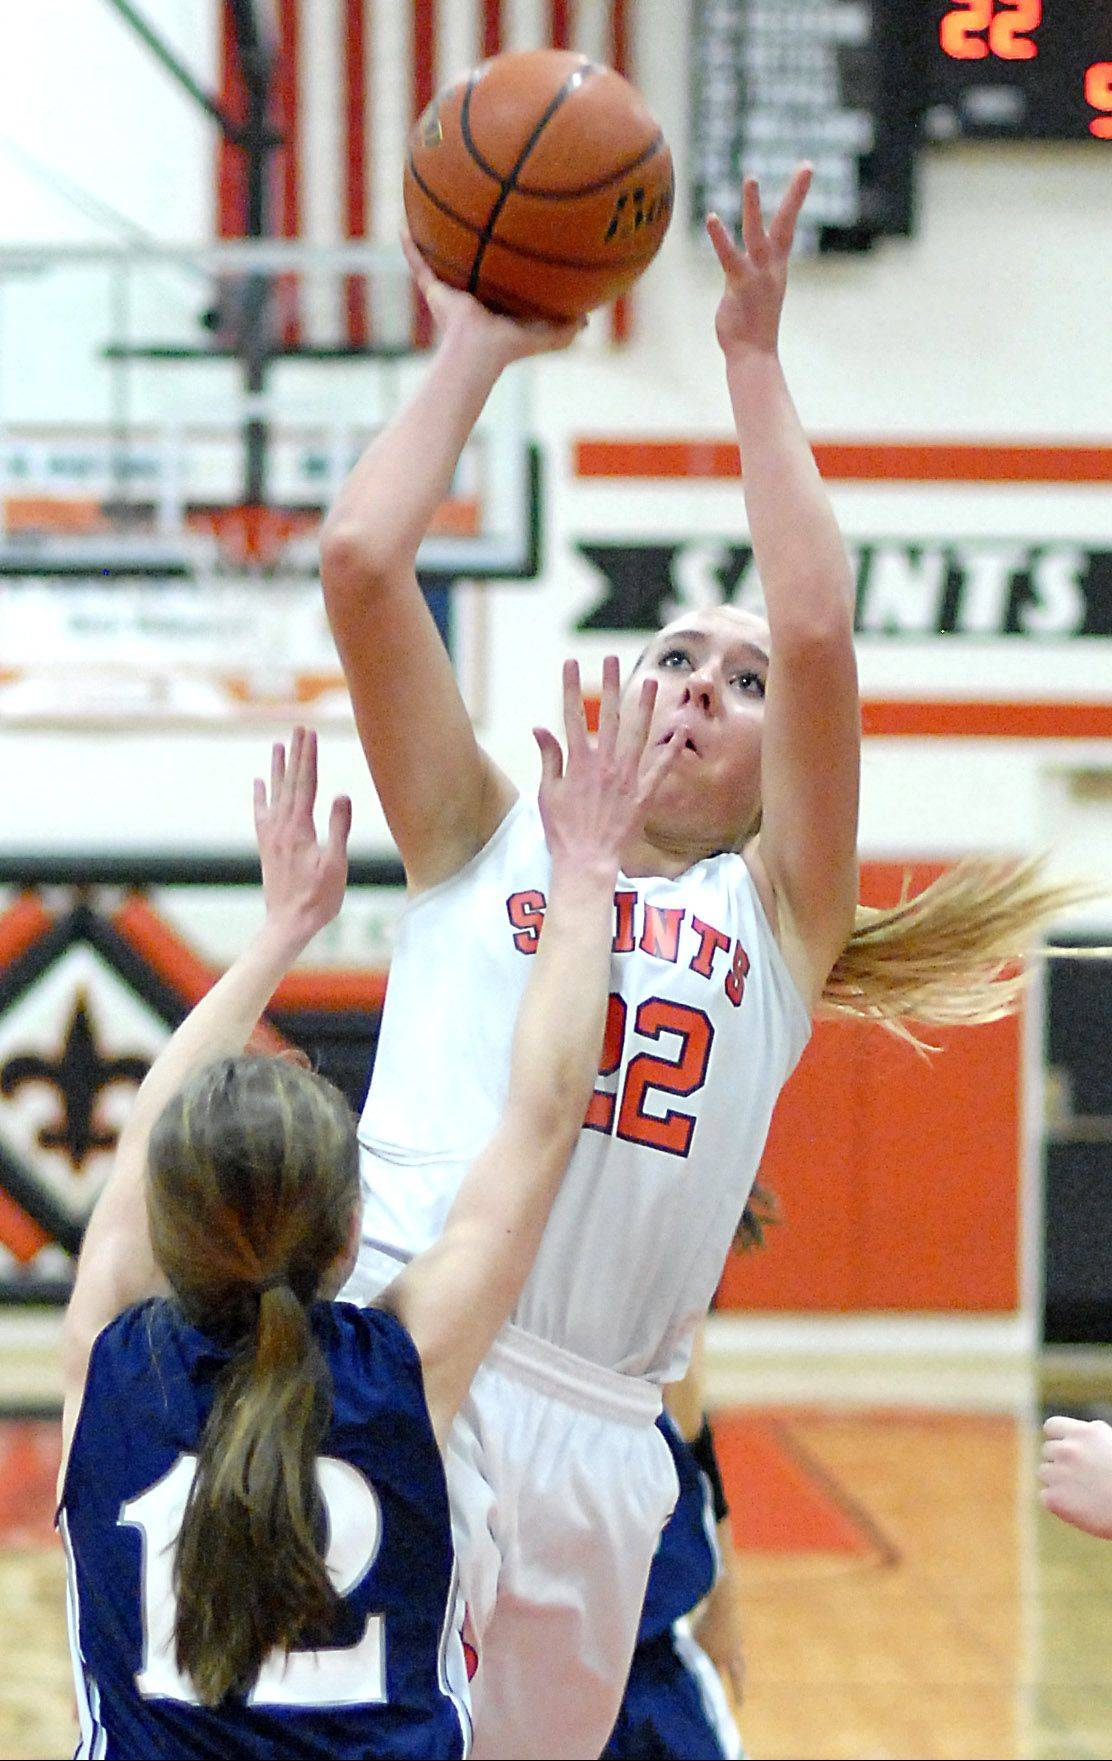 St. Charles East's Anna Bartels sinks a shot over a block by West Chicago's Mae Elizabeth Gimre in the second quarter on Tuesday, December 4.